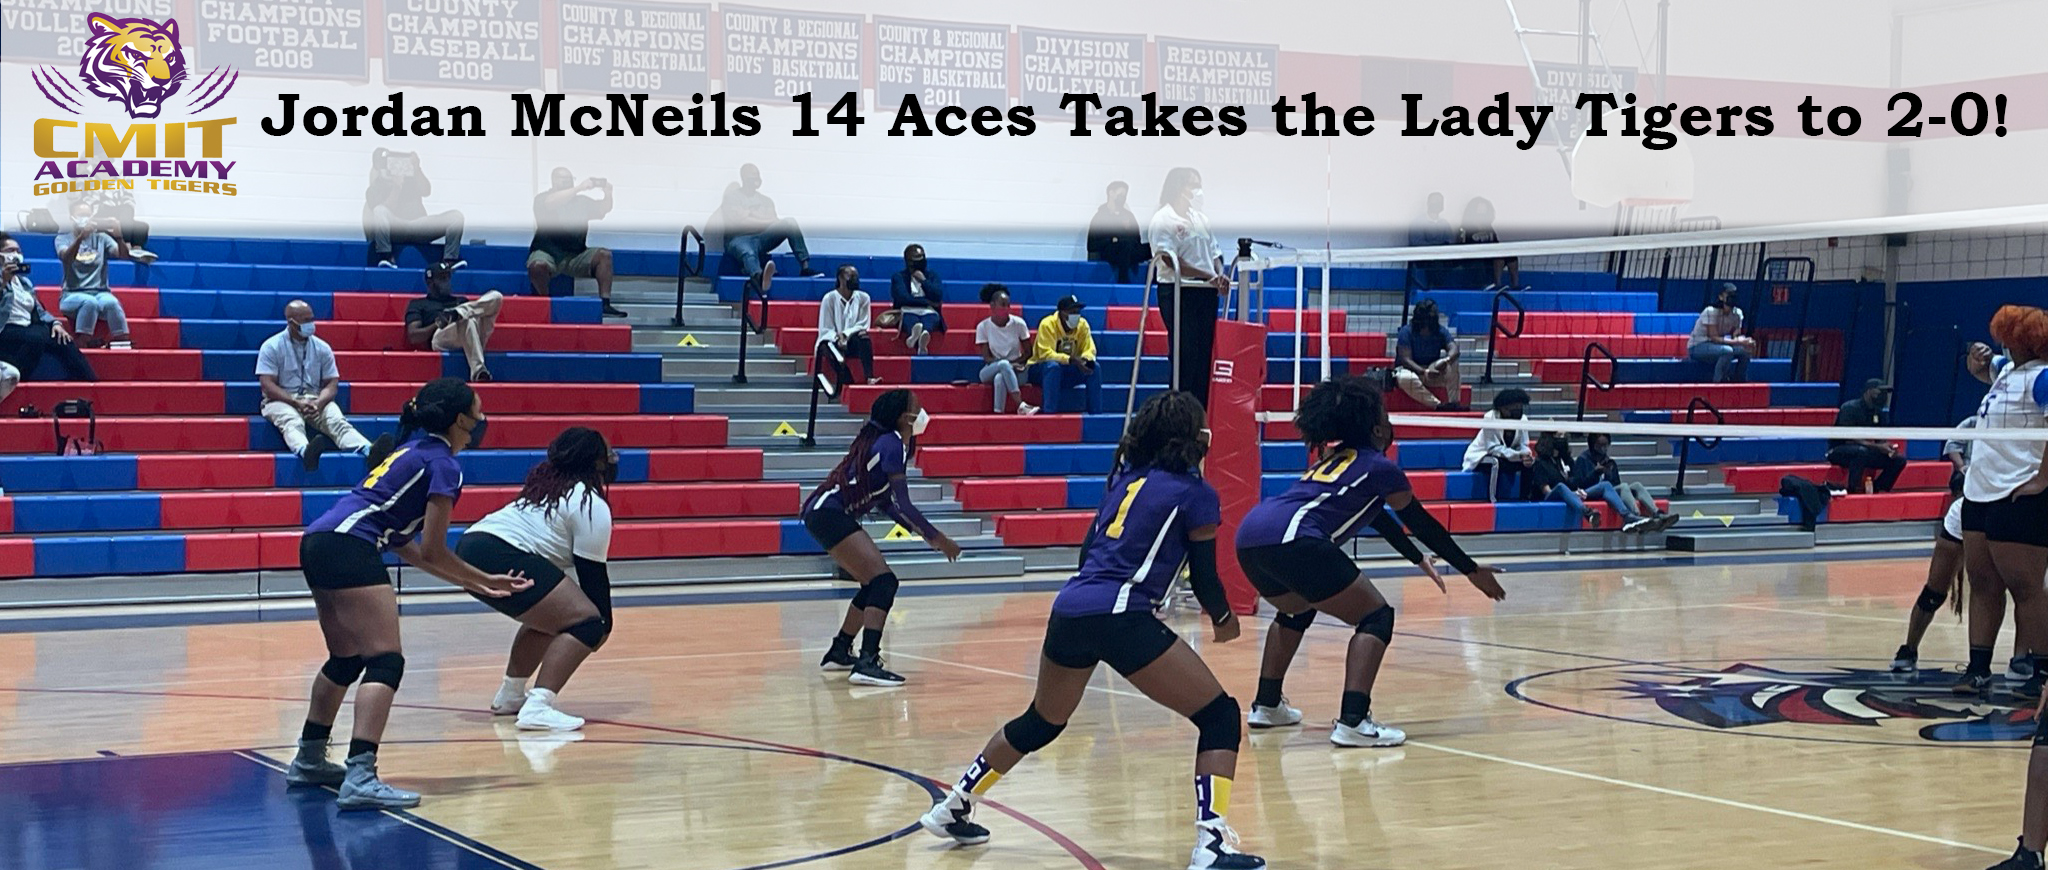 Jordan McNeils 14 Aces Takes the Lady Tigers to 2-0!